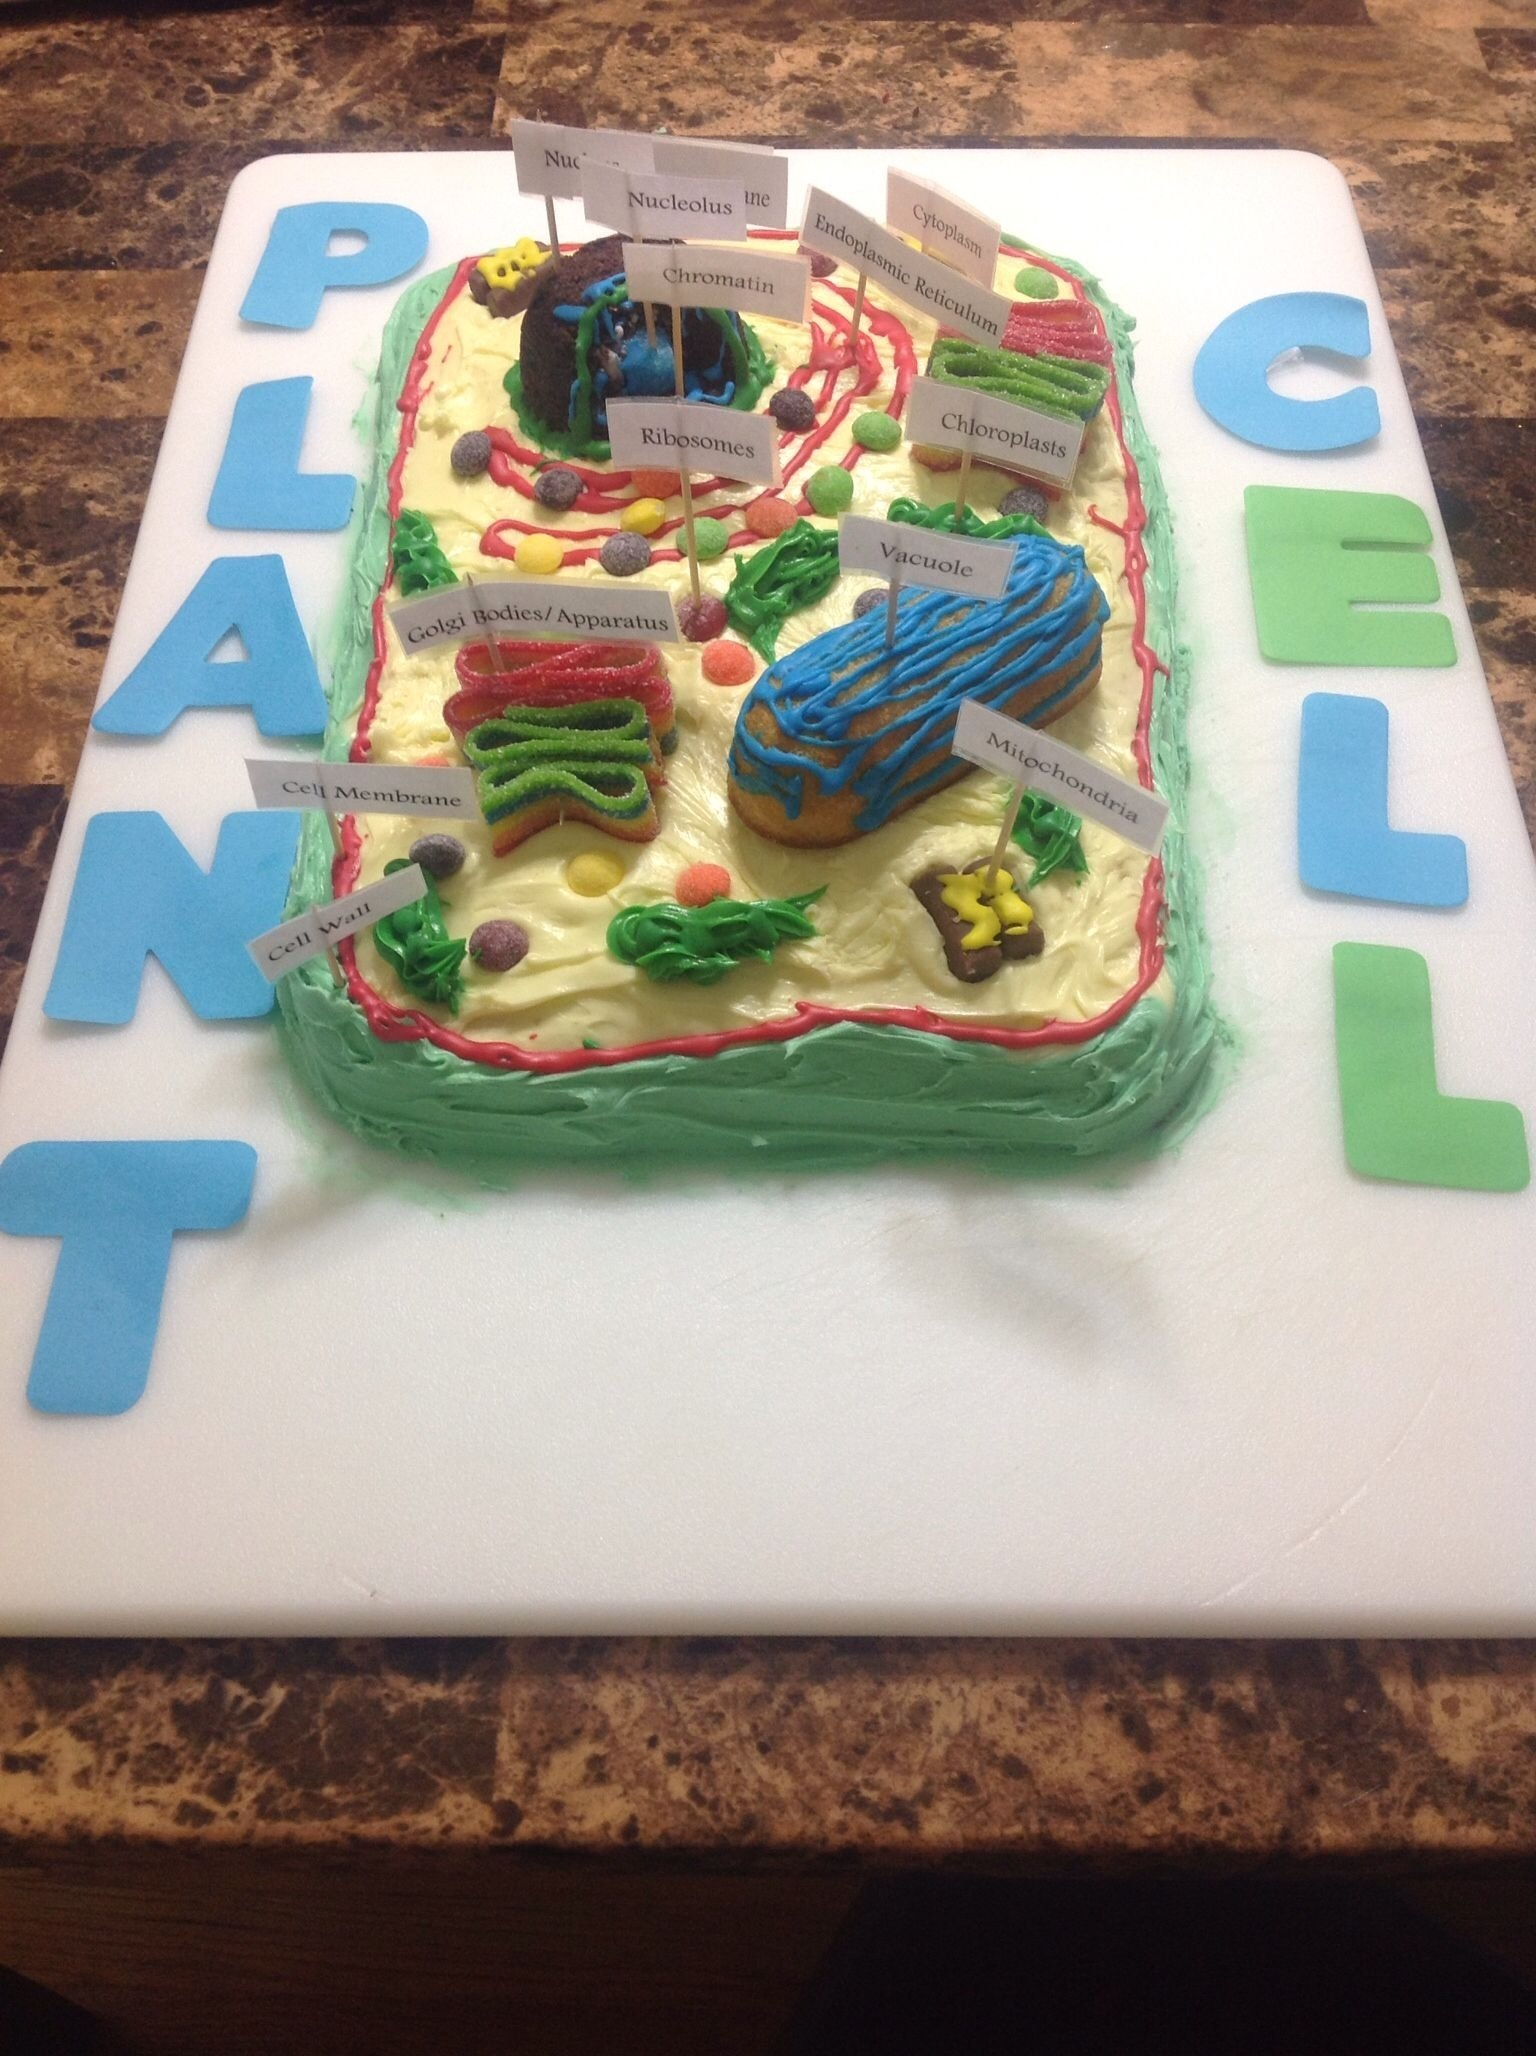 10 Ideal Edible Plant Cell Project Ideas treys science project plant cell cake kids project ideas 1 2020